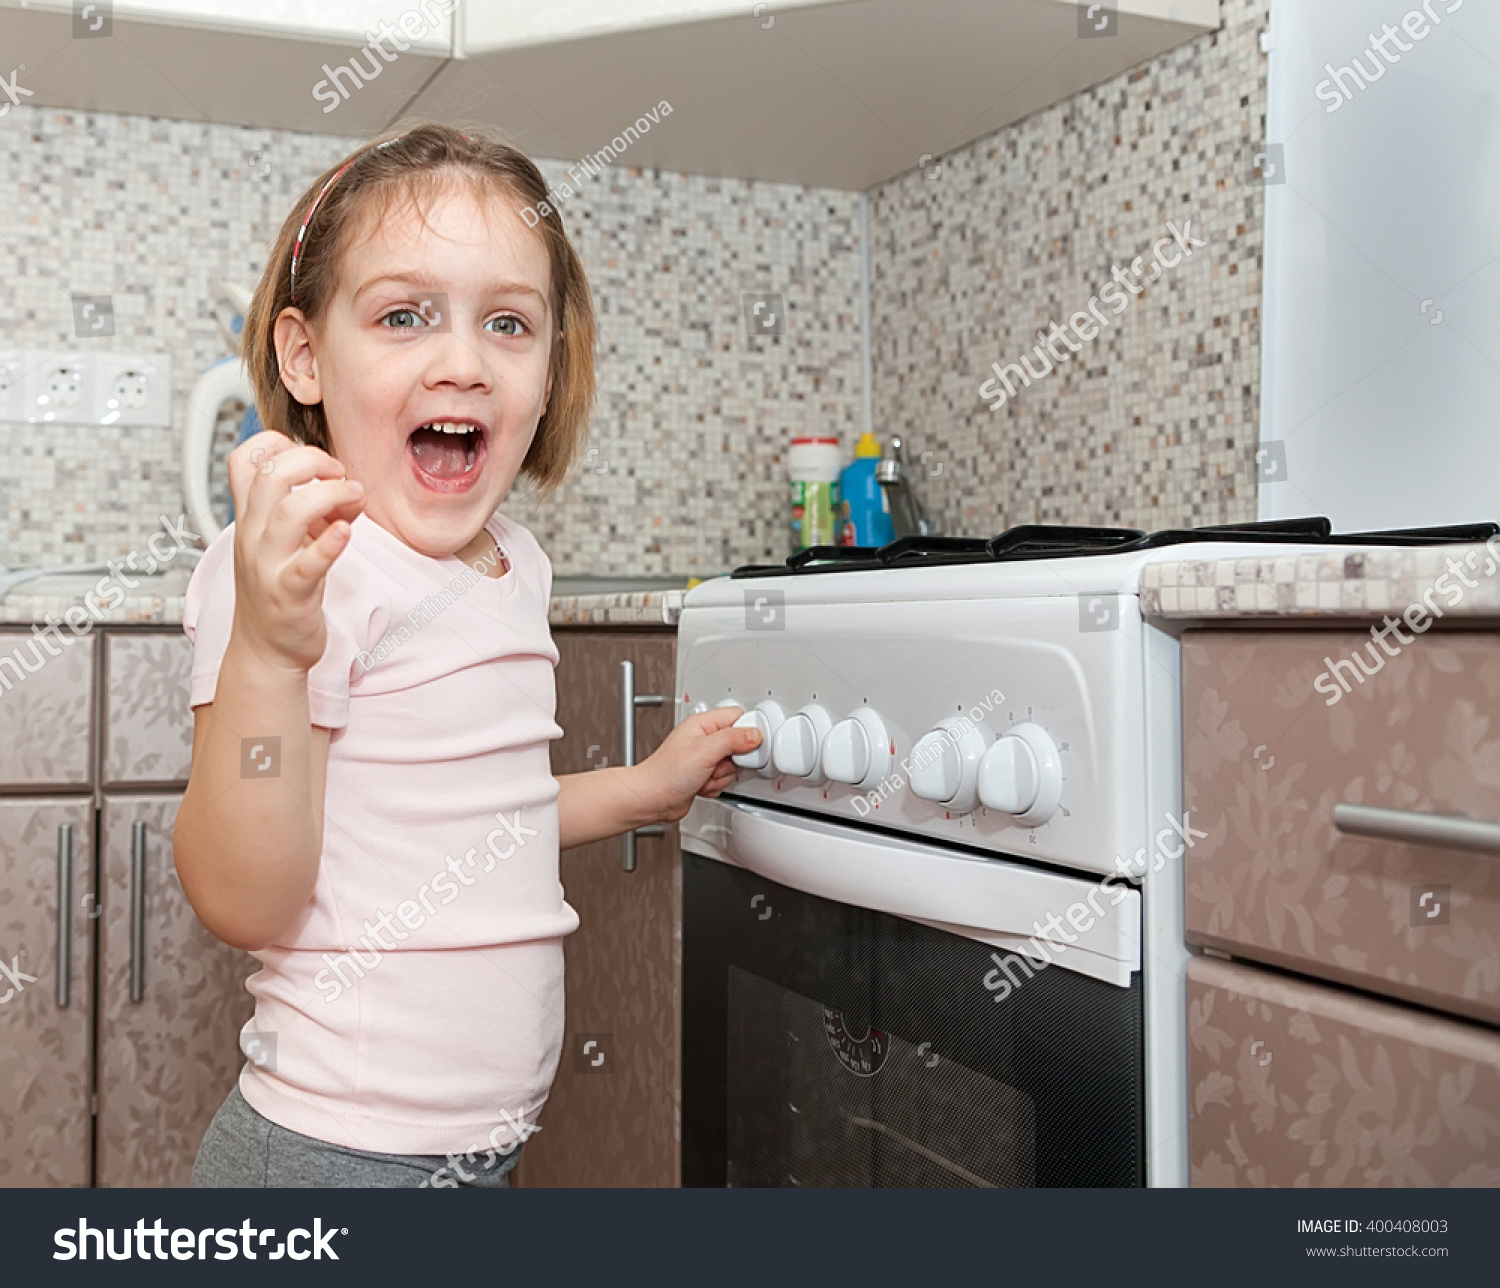 royalty child out supervision of parents  child out supervision of parents playing stove stock photo